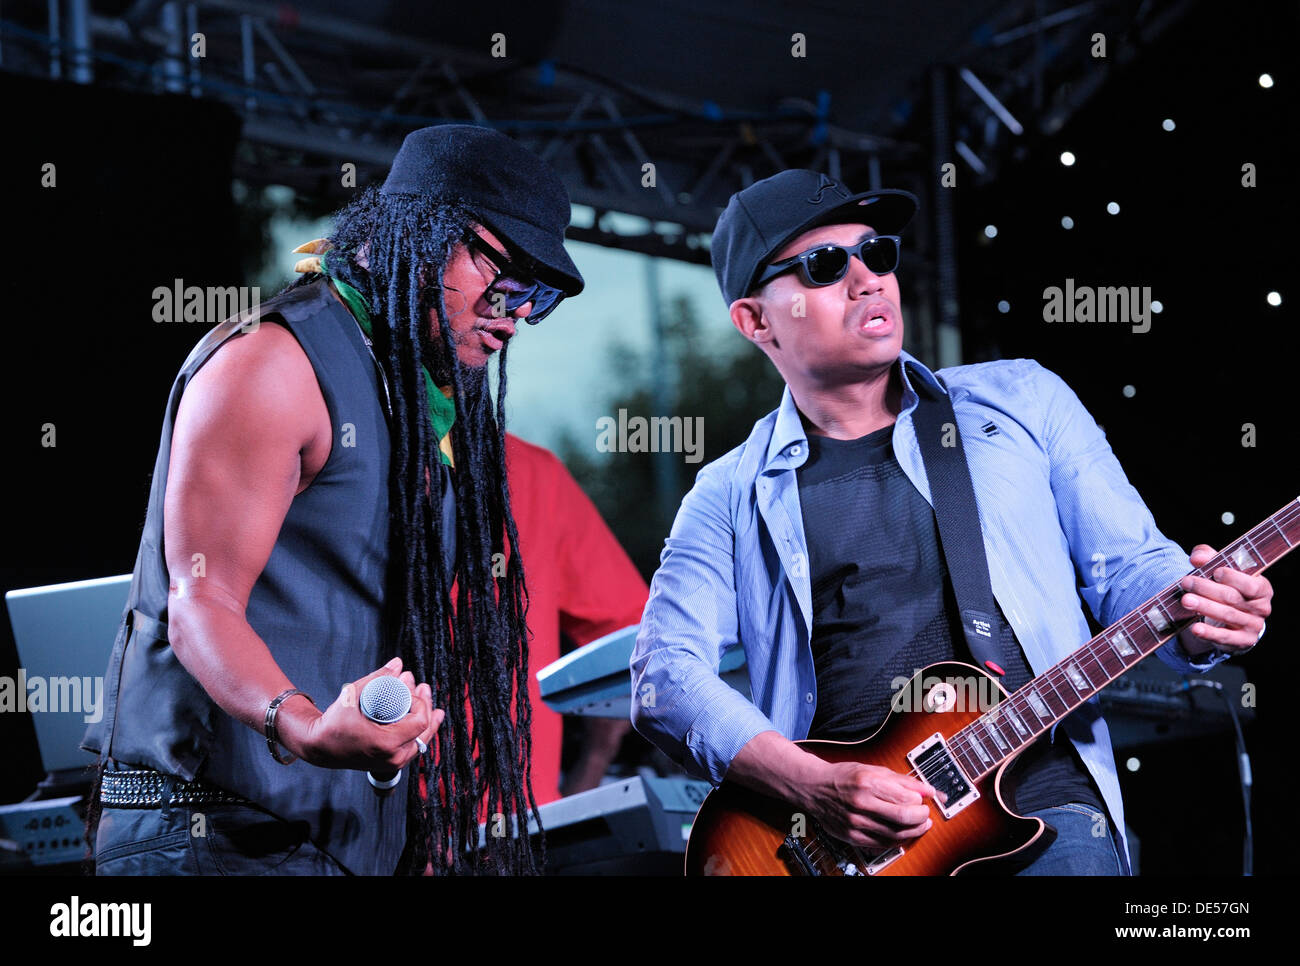 Jamaican British singer Maxi Priest and lead guitarist at the The Flyover Show, Hockley Circus, Birmingham, England, August 2012 - Stock Image